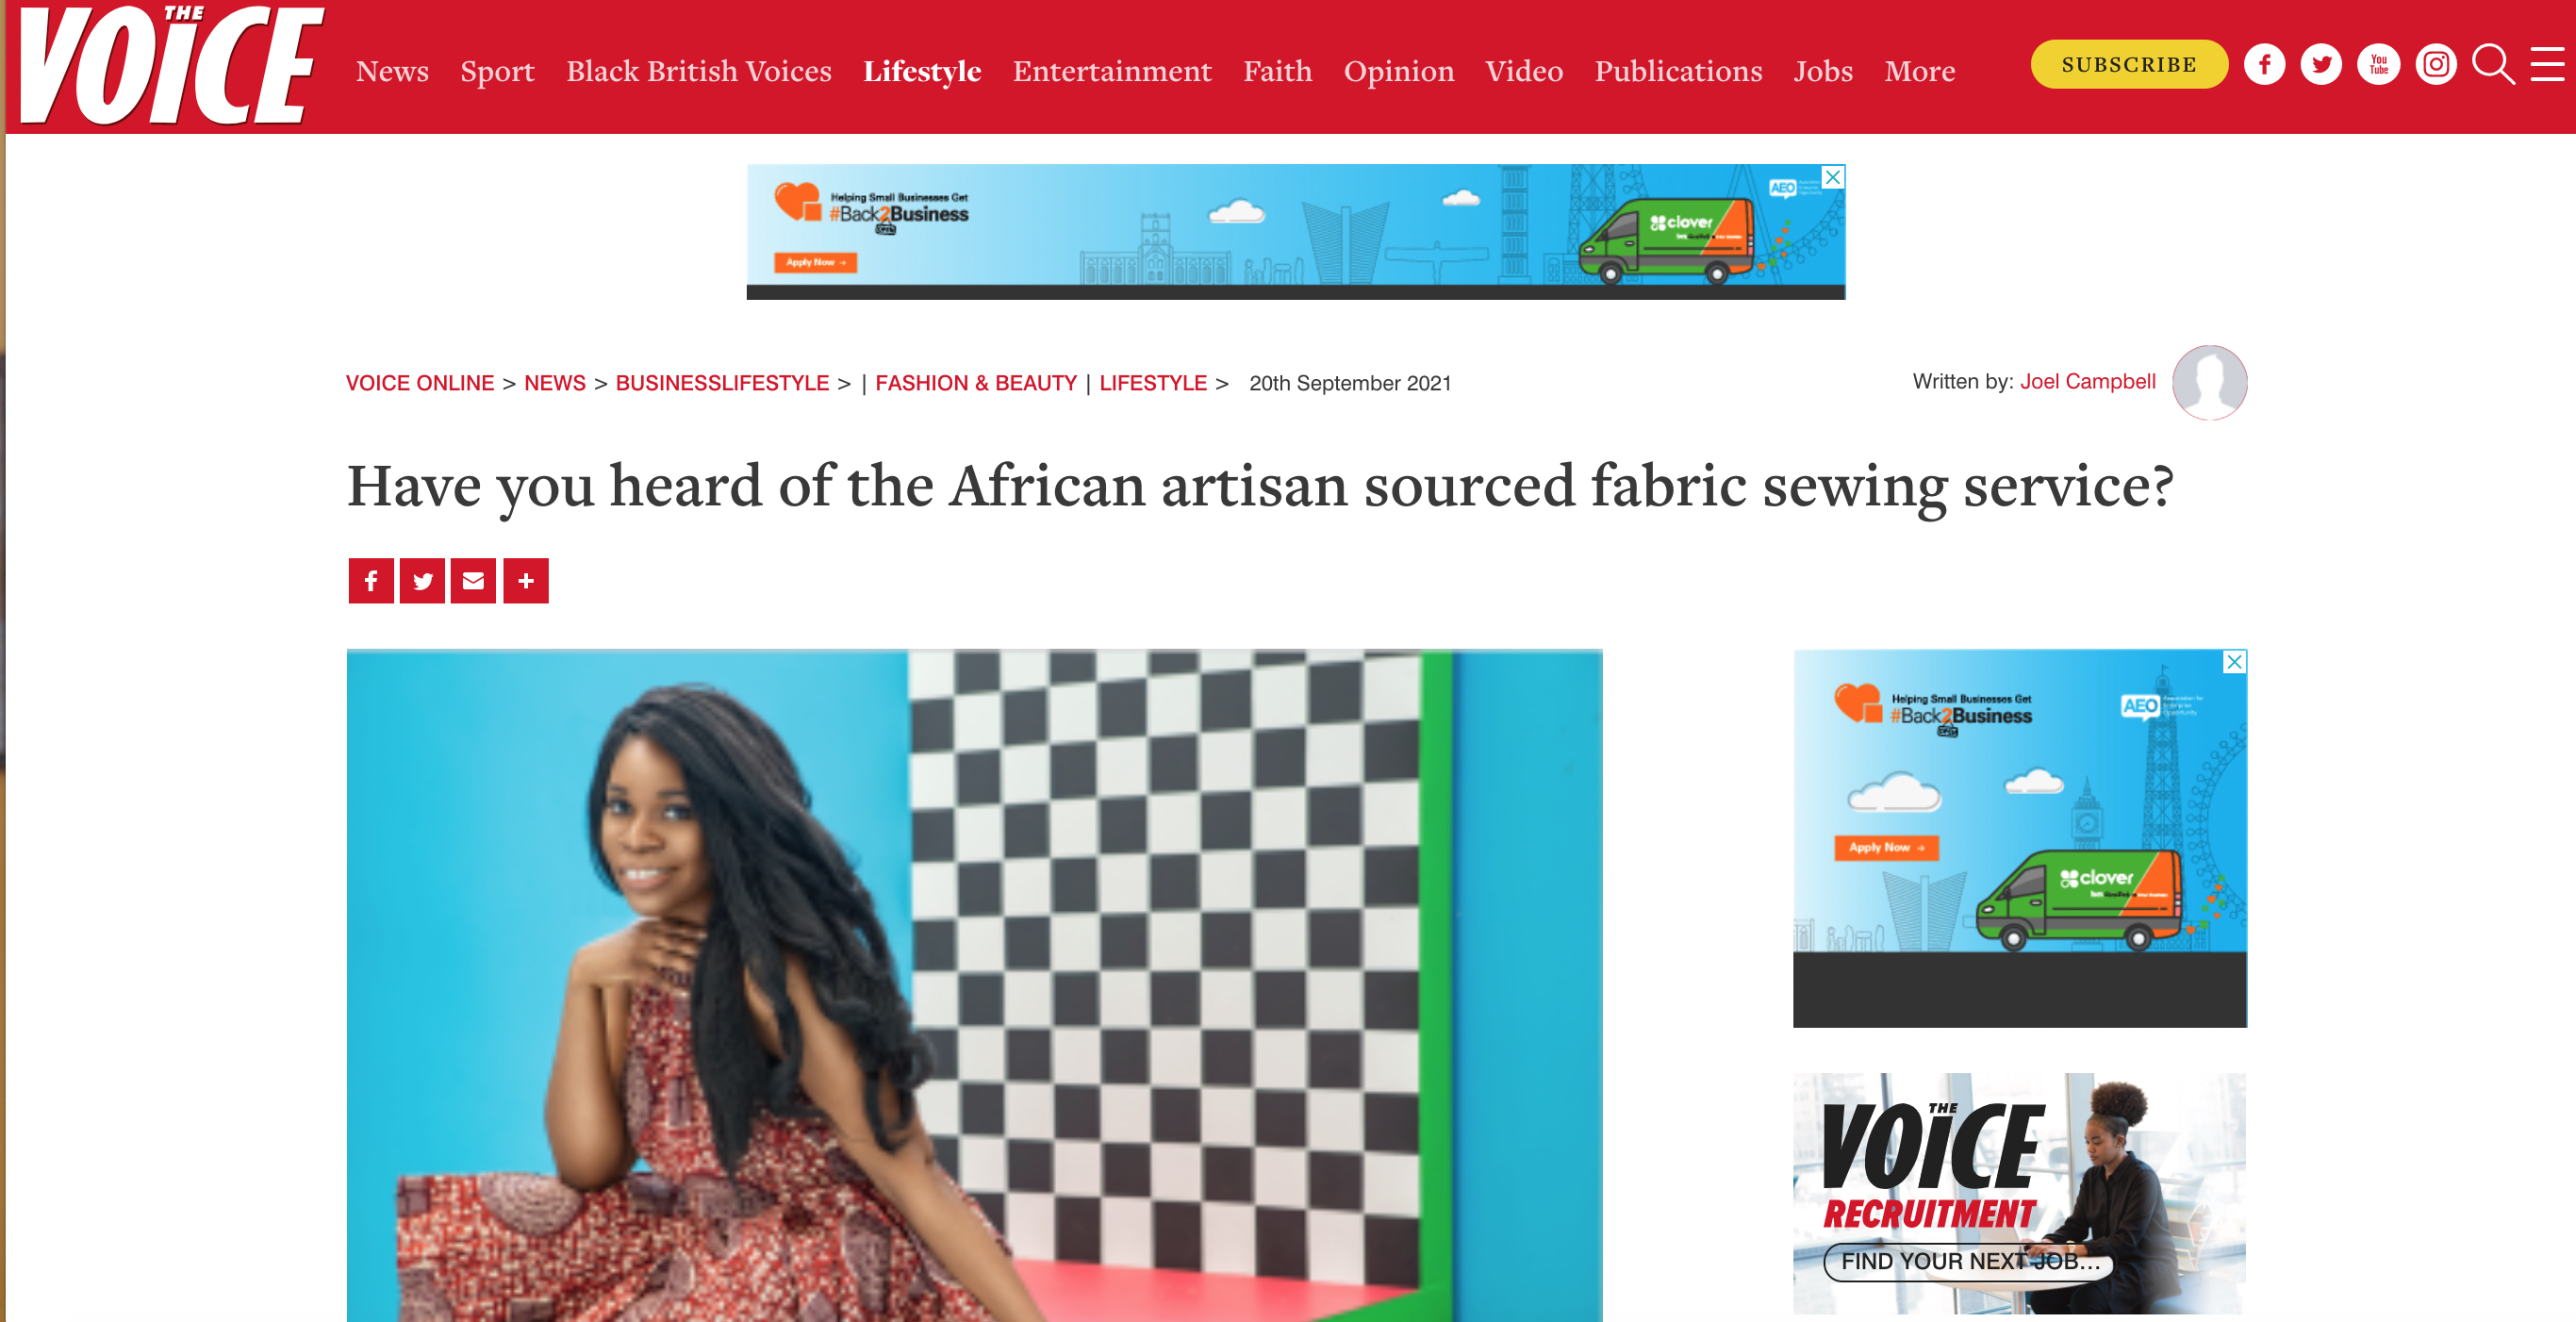 African artisan sourced fabric sewing service in the press!